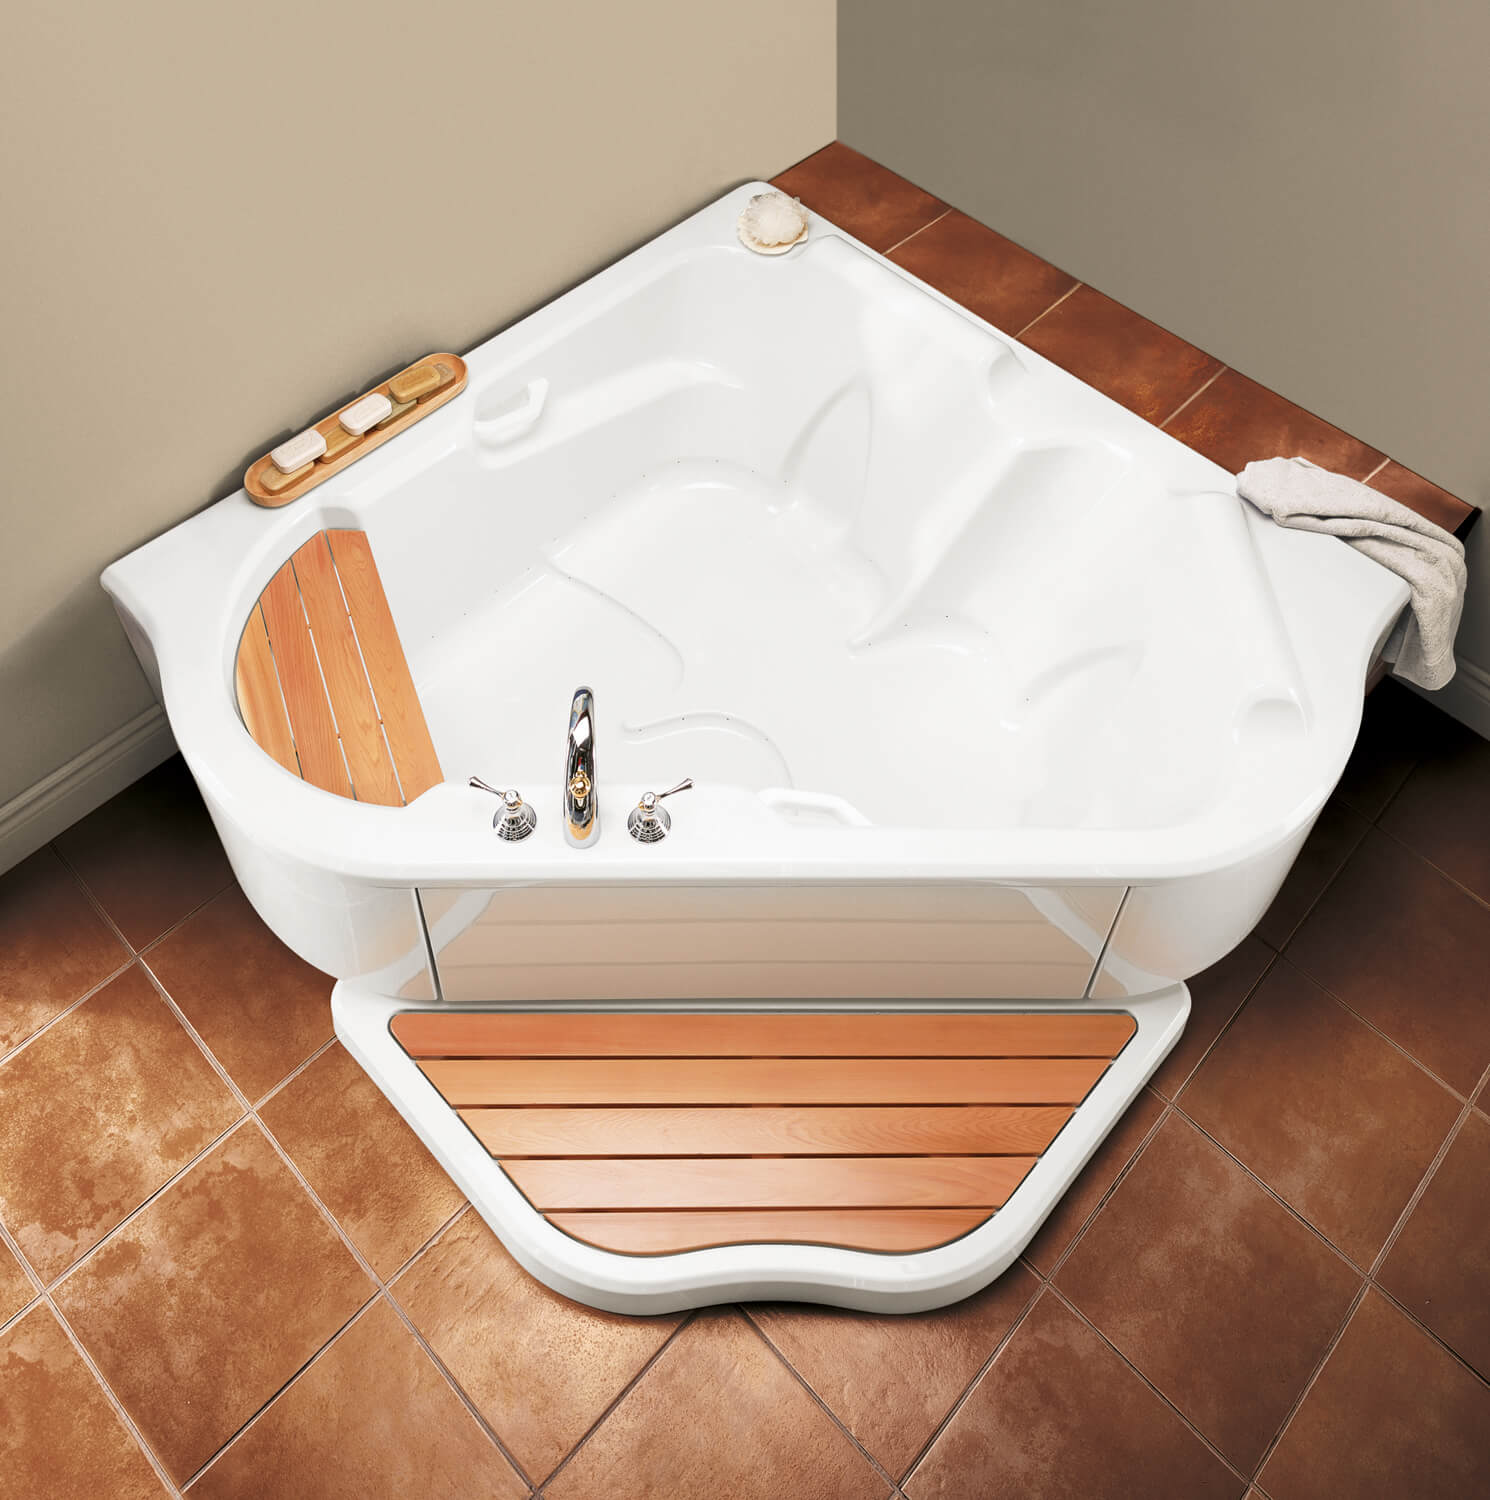 Bainultra TMU 5454 two person corner drop-in air jet bathtub for your modern bathroom